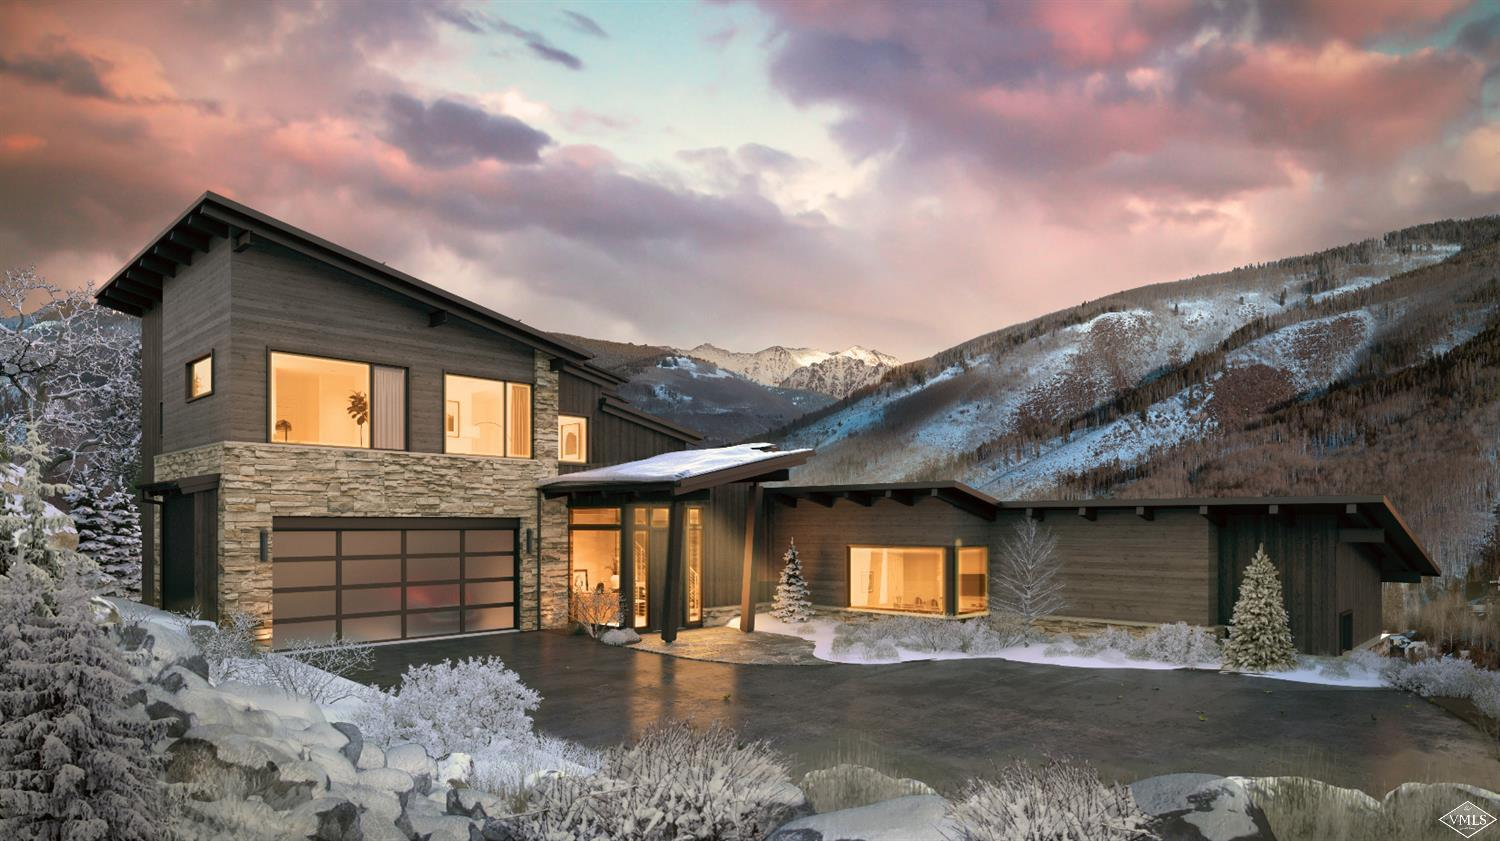 Spectacular 5-bedroom, 5.5 bathroom new construction single family home in an idyllic West Vail setting with sweeping Gore Range, Bald Mountain, and Valley views. Not a detail was overlooked in this stunning mountain contemporary design by Hans Berglund Architecture and Vail Custom Builders. Cutting edge features include an open concept design, large great room, luxurious main floor master suite, office, oversized garage with ample storage, a large family room, generous outdoor spaces, and more.